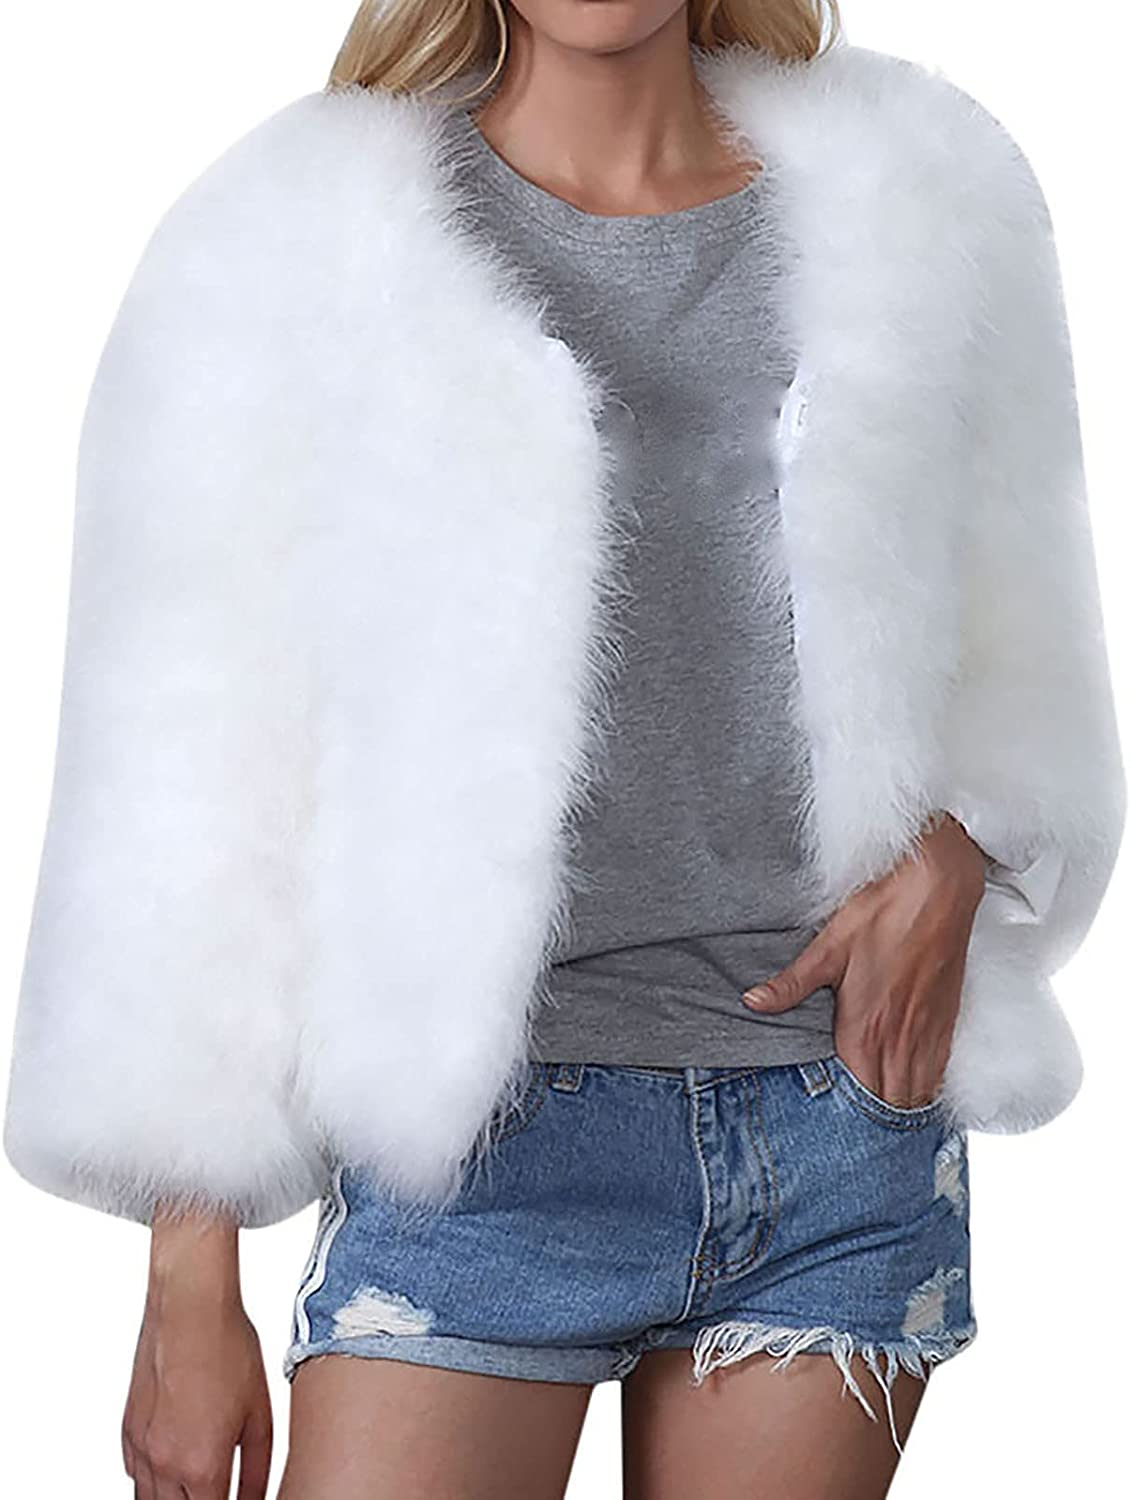 Womens Fashion Solid Color Warm Faux Coat Jacket Winter Soft Thick Plush Outerwear Cardigan Plus Size Tunic